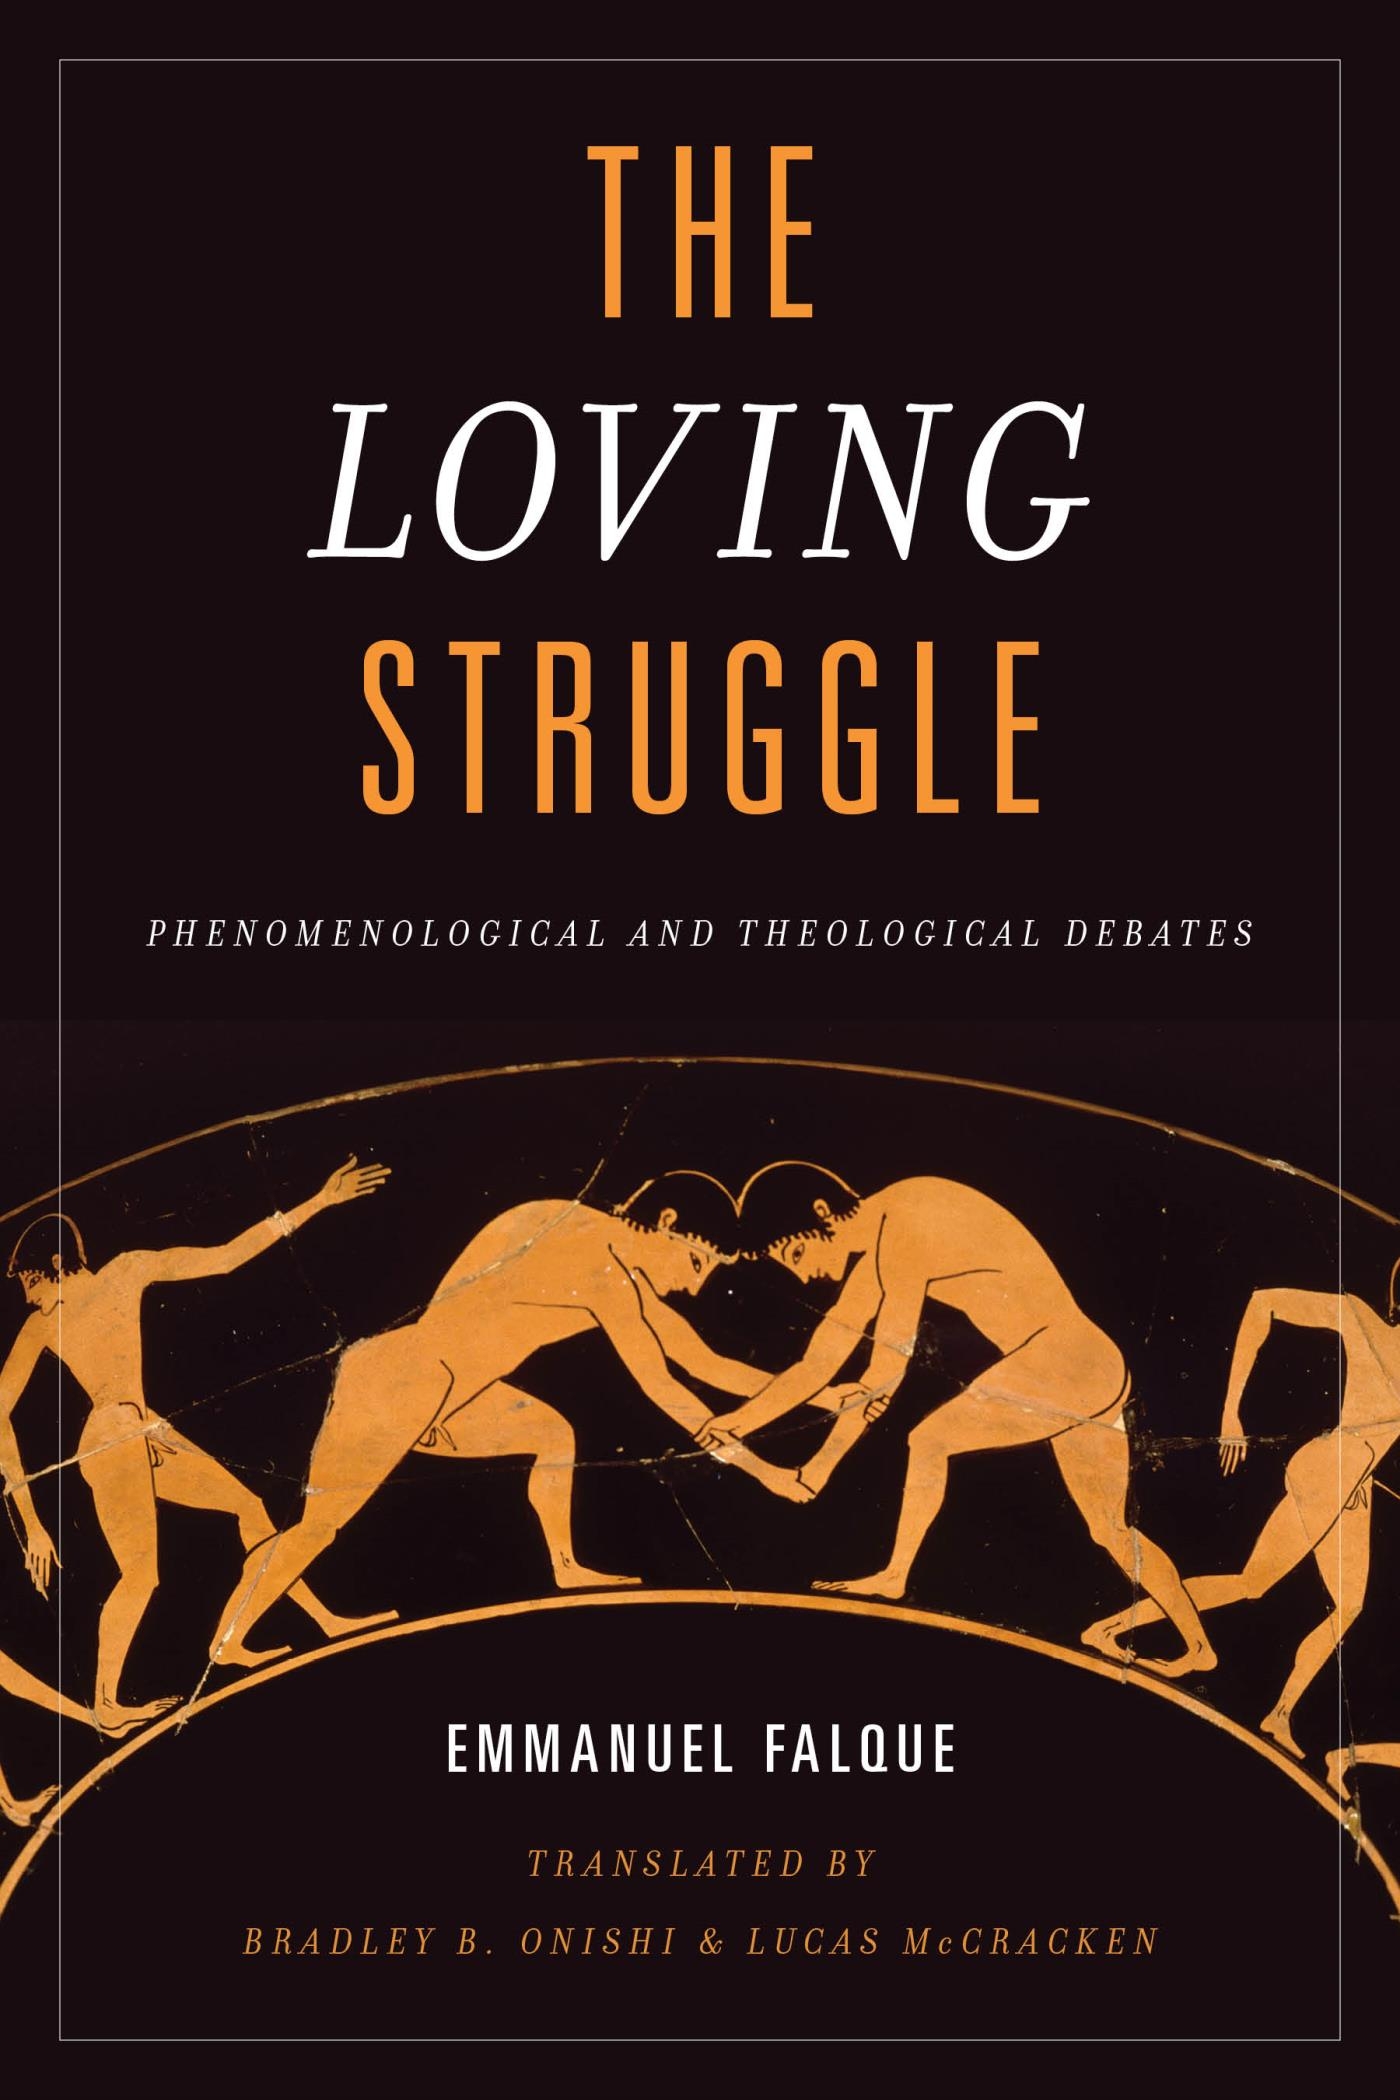 The Loving StrugglePhenomenological and Theological DebatesBy Emmanuel Falque, Bradley B. Onishi, and Lucas McCrackenPublication Date: Aug 2018Pages 240 - Click here for publisher websiteClick here to order from Amazon